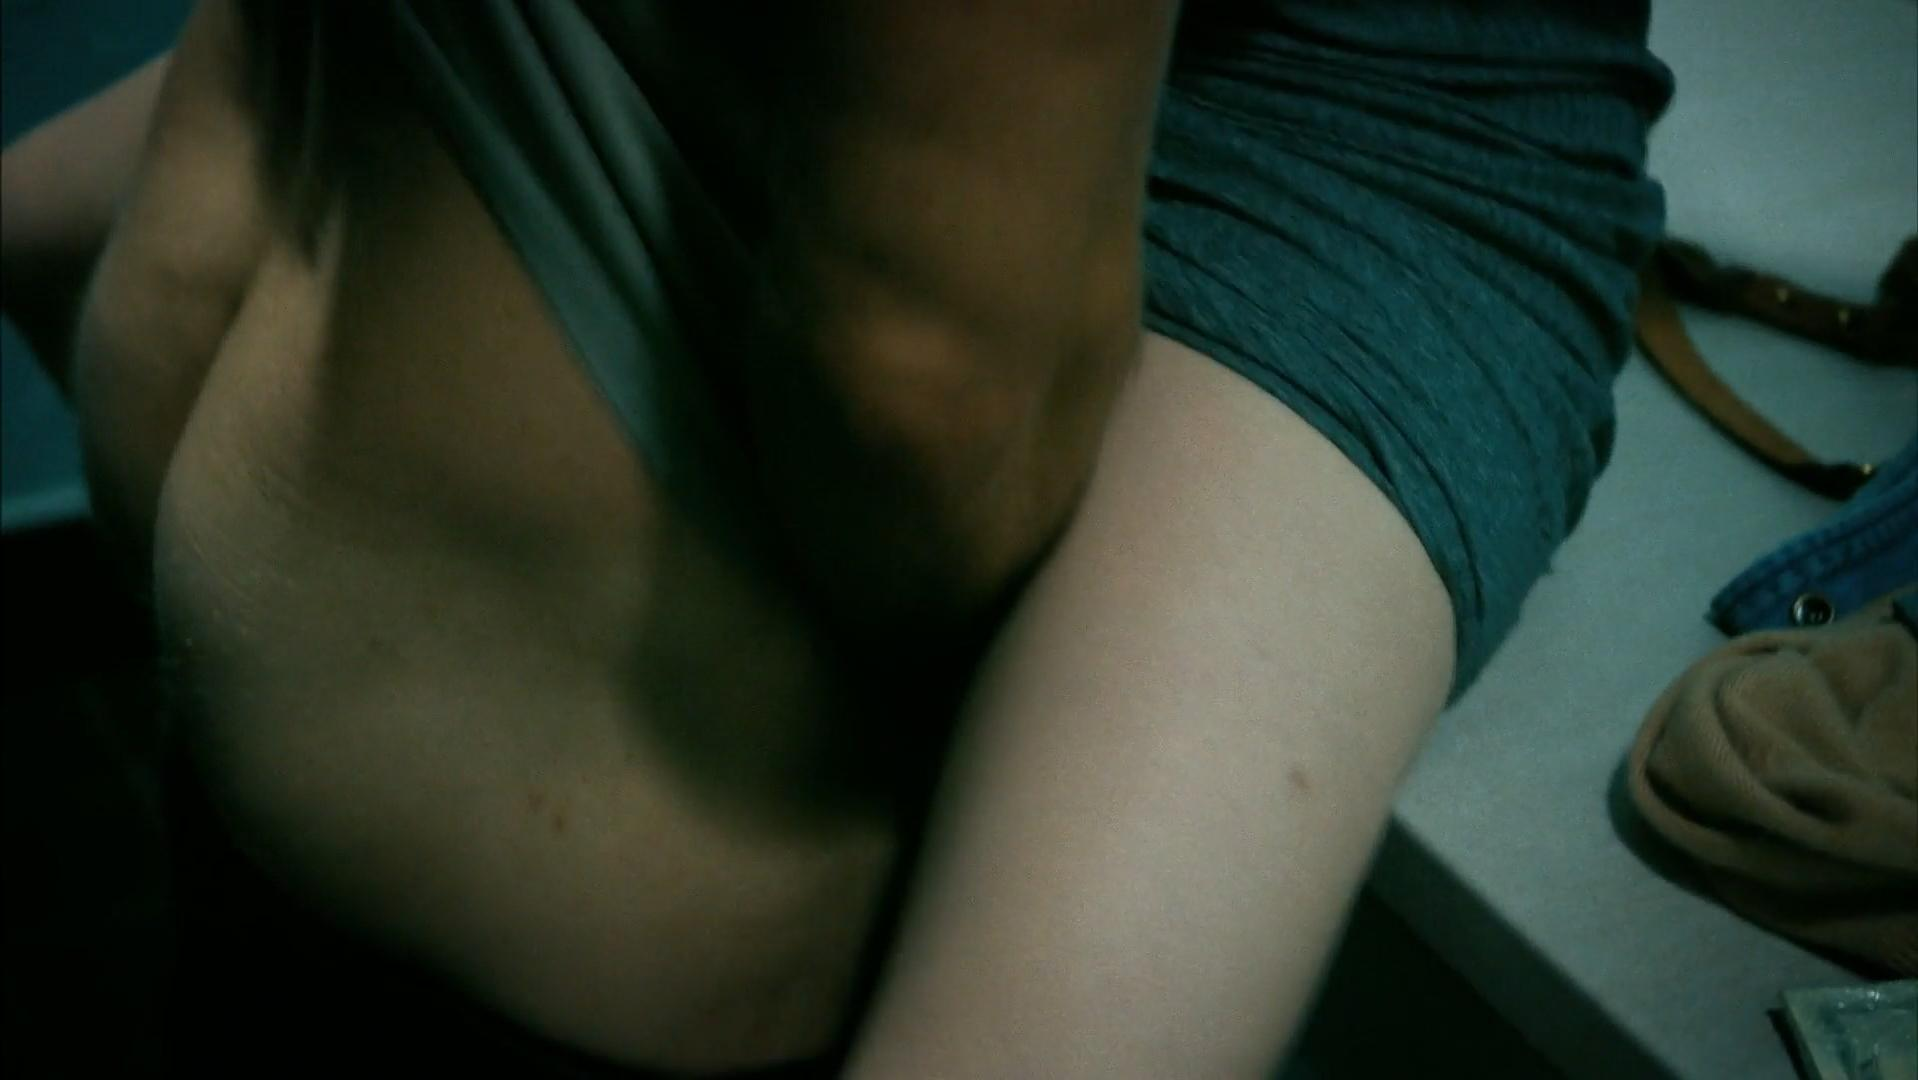 Carrie coon sex scene